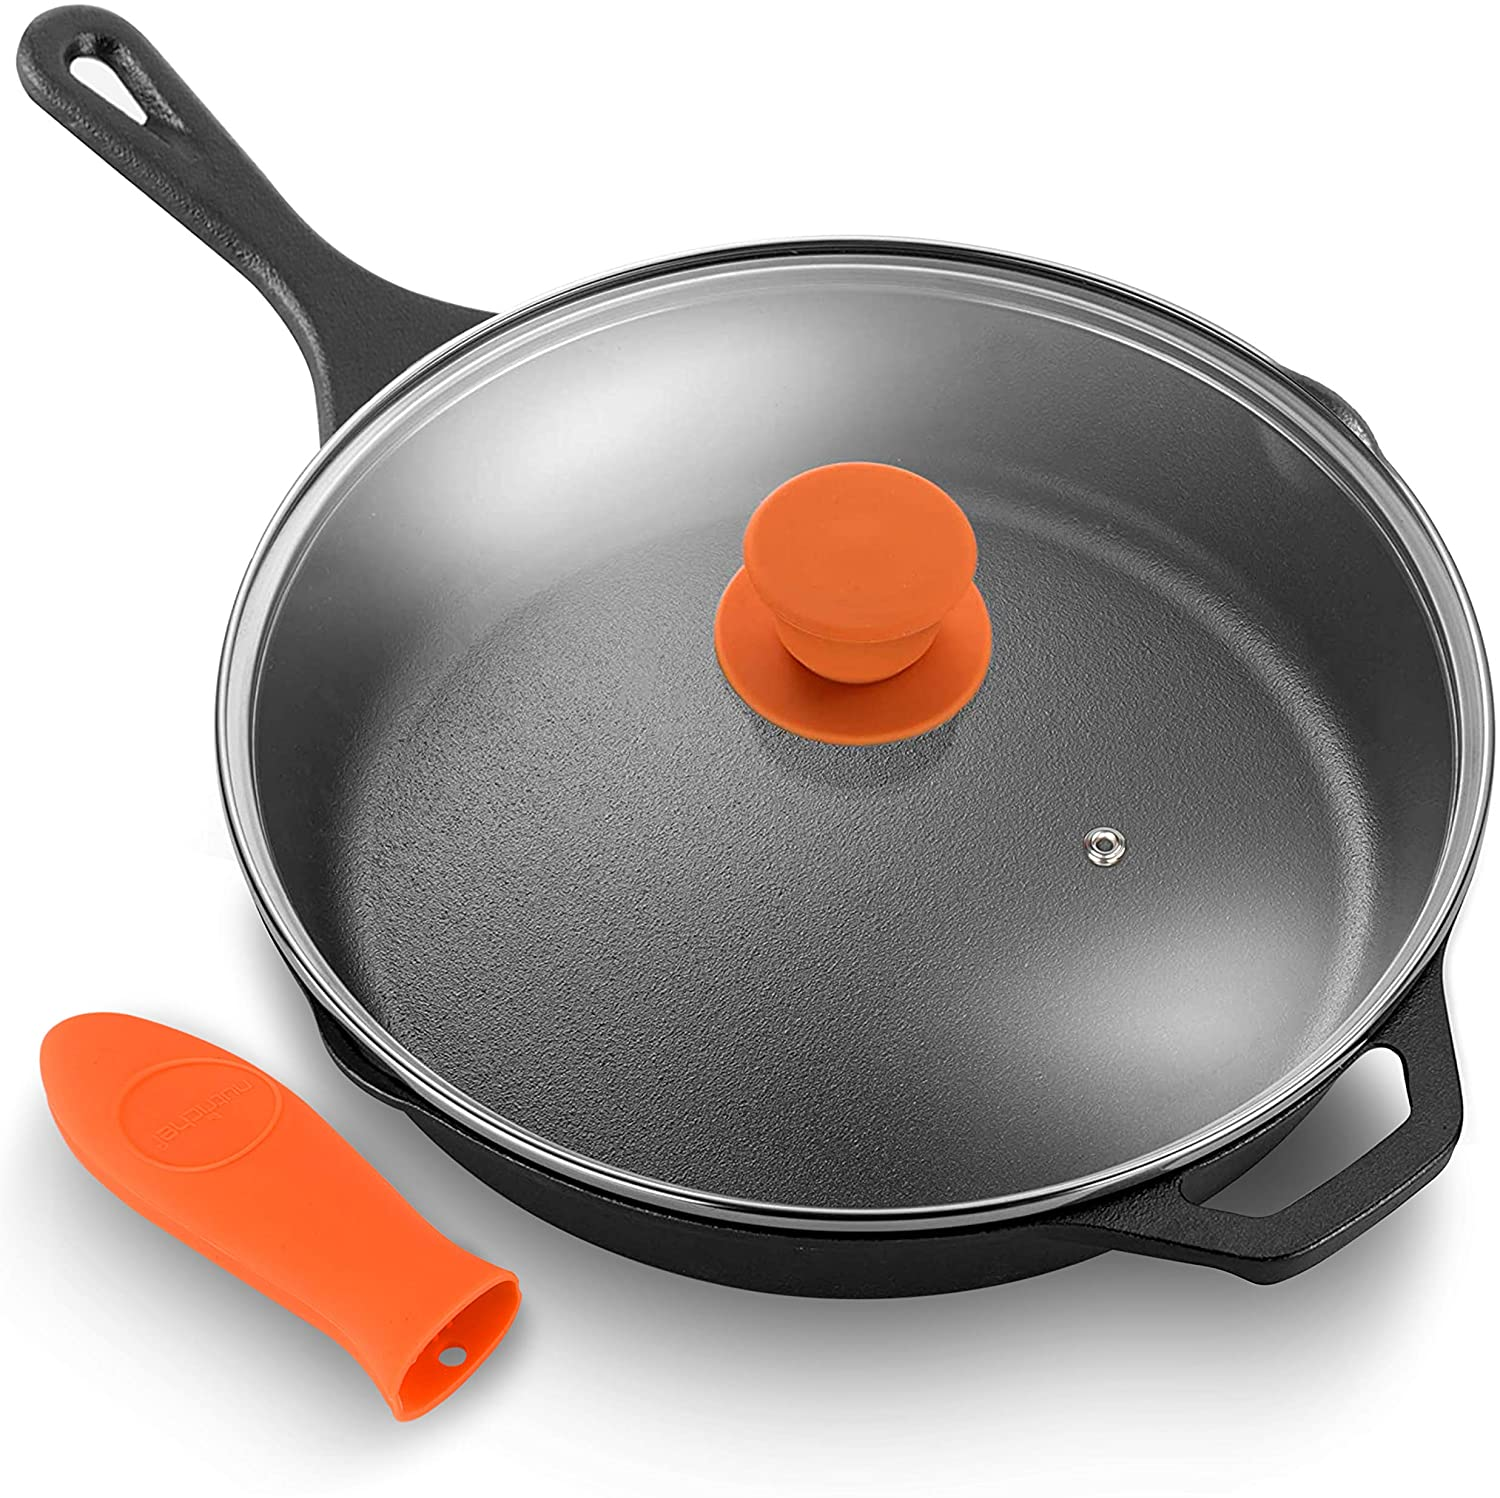 NutriChef PFOA-Free Oven Safe Kitchen Nonstick Cookware Frying Skillet w/Glass Lid 12